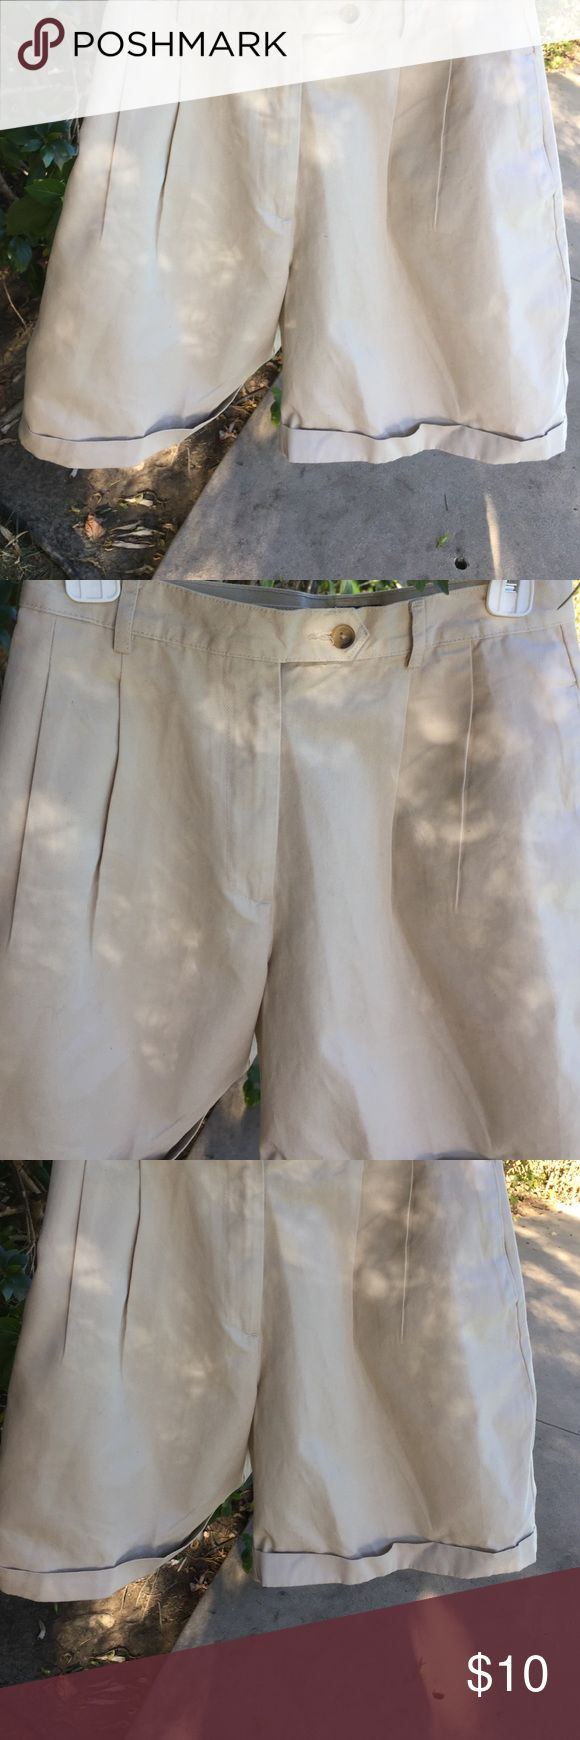 Charter Club pleated & cuffed beige shorts Charter Club beige shorts with pleats in front and cuffs on the bottom. In great condition. Looks brand new. 100% cotton. Has side pockets. Shorts Bermudas